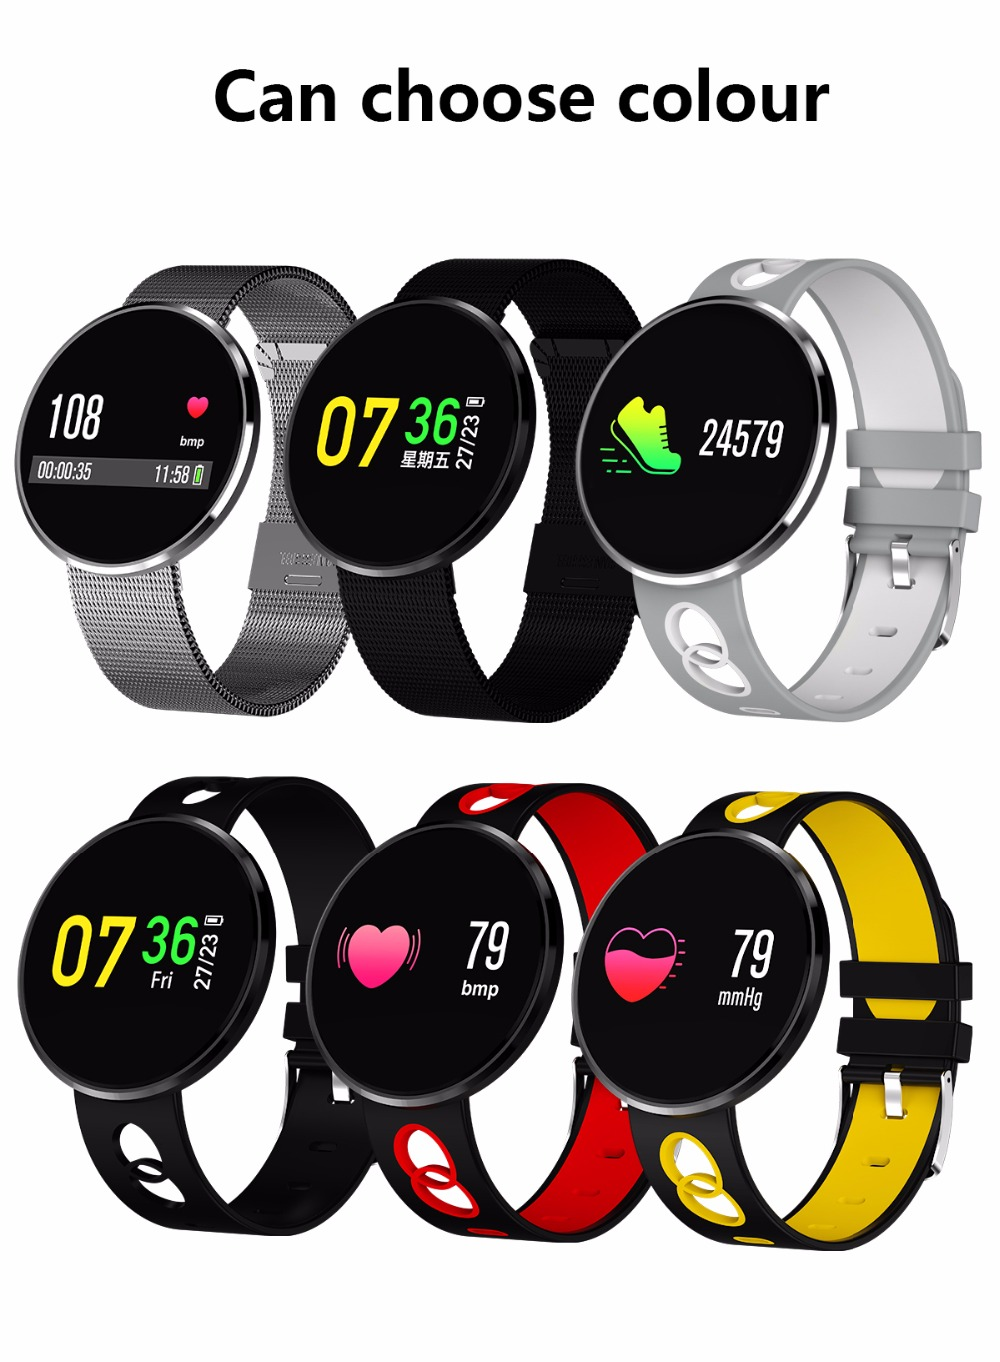 CF006H X6 Bluetooth Waterproof Smart Watch Fashion Blood Pressure Heart Rate Monitor Smartwatch 2018 for Android IOS women men s3 bluetooth waterproof smart watch wristband fashion women ladies heart rate monitor fitness tracker smartwatch for android ios